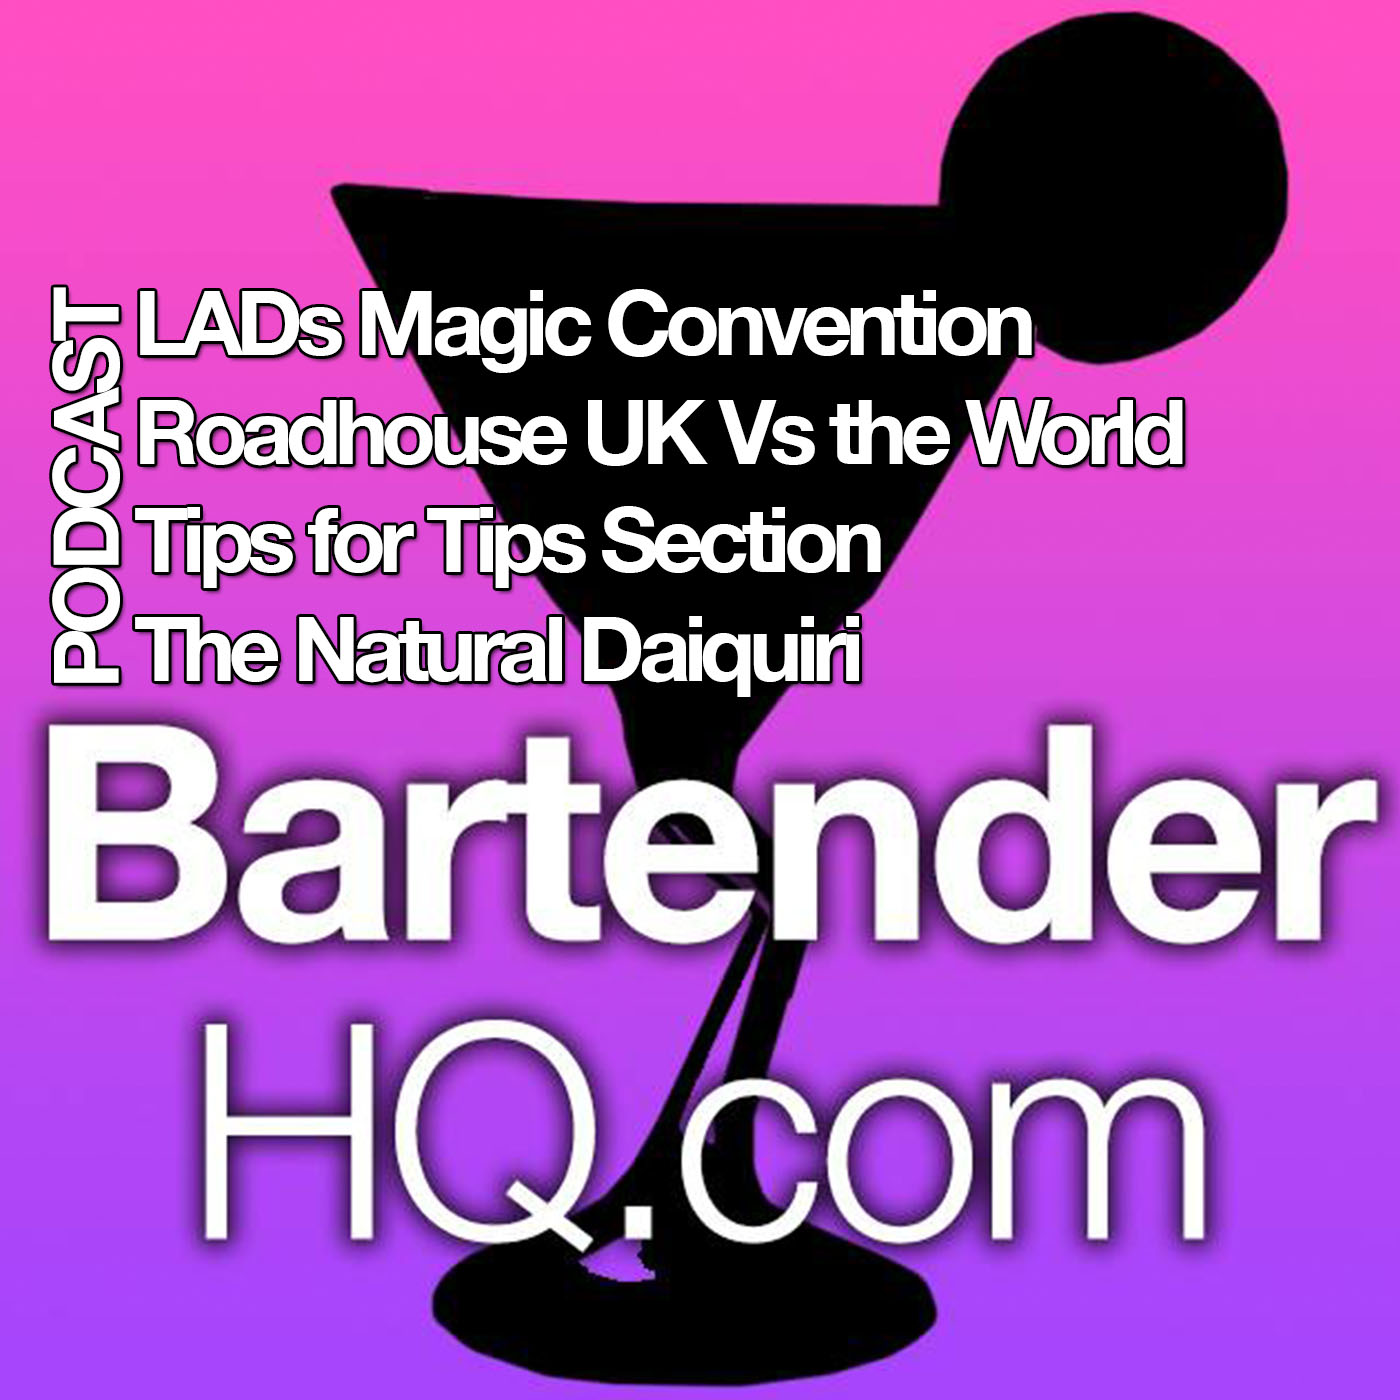 Podcast Episode 003 | Bartender HQ, Magic and Natural Daiquiris